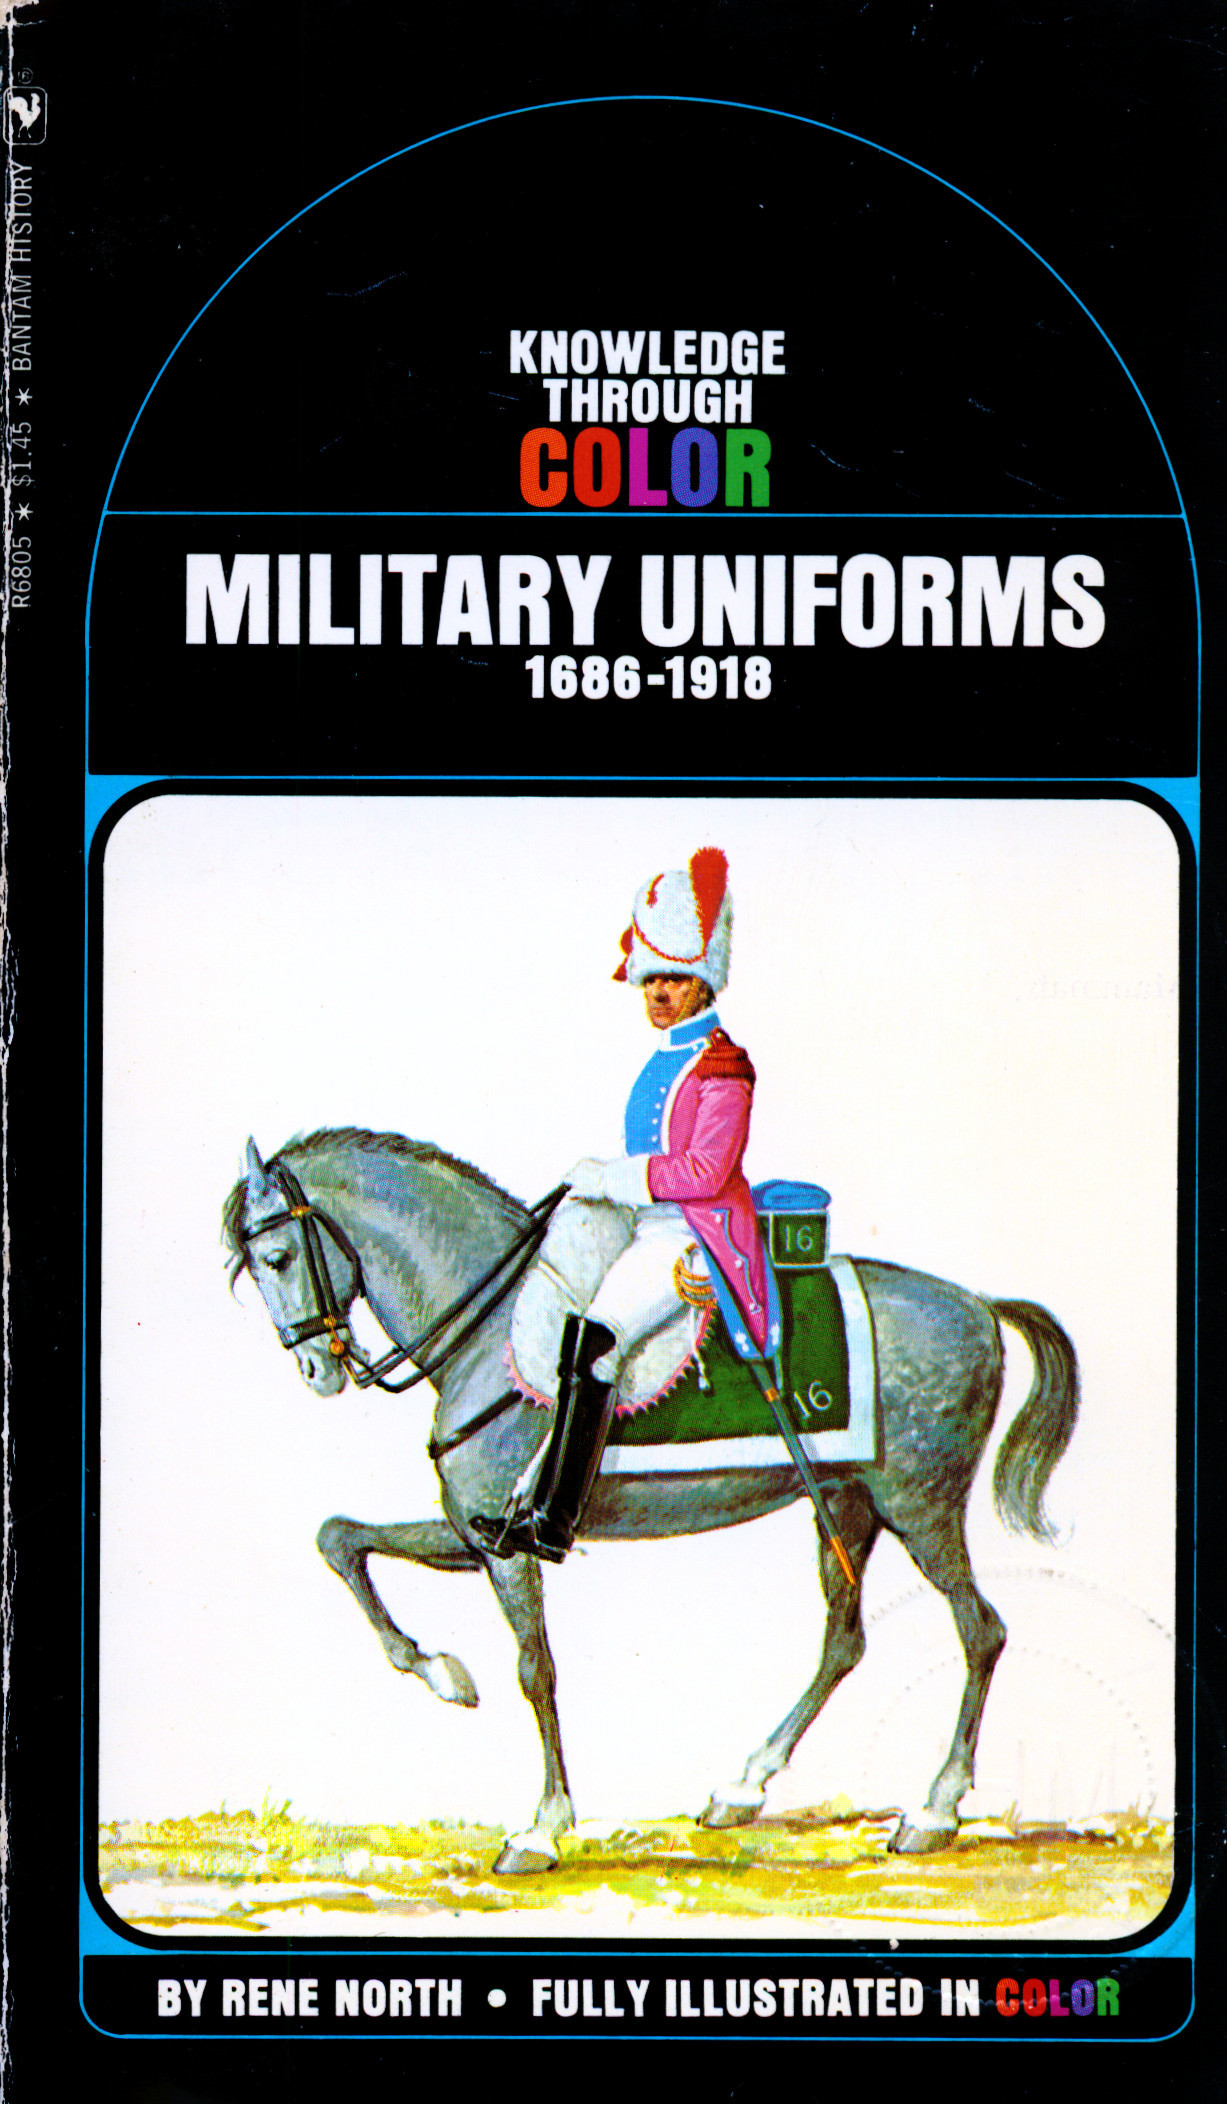 Military uniforms, 1686-1918 Rene North